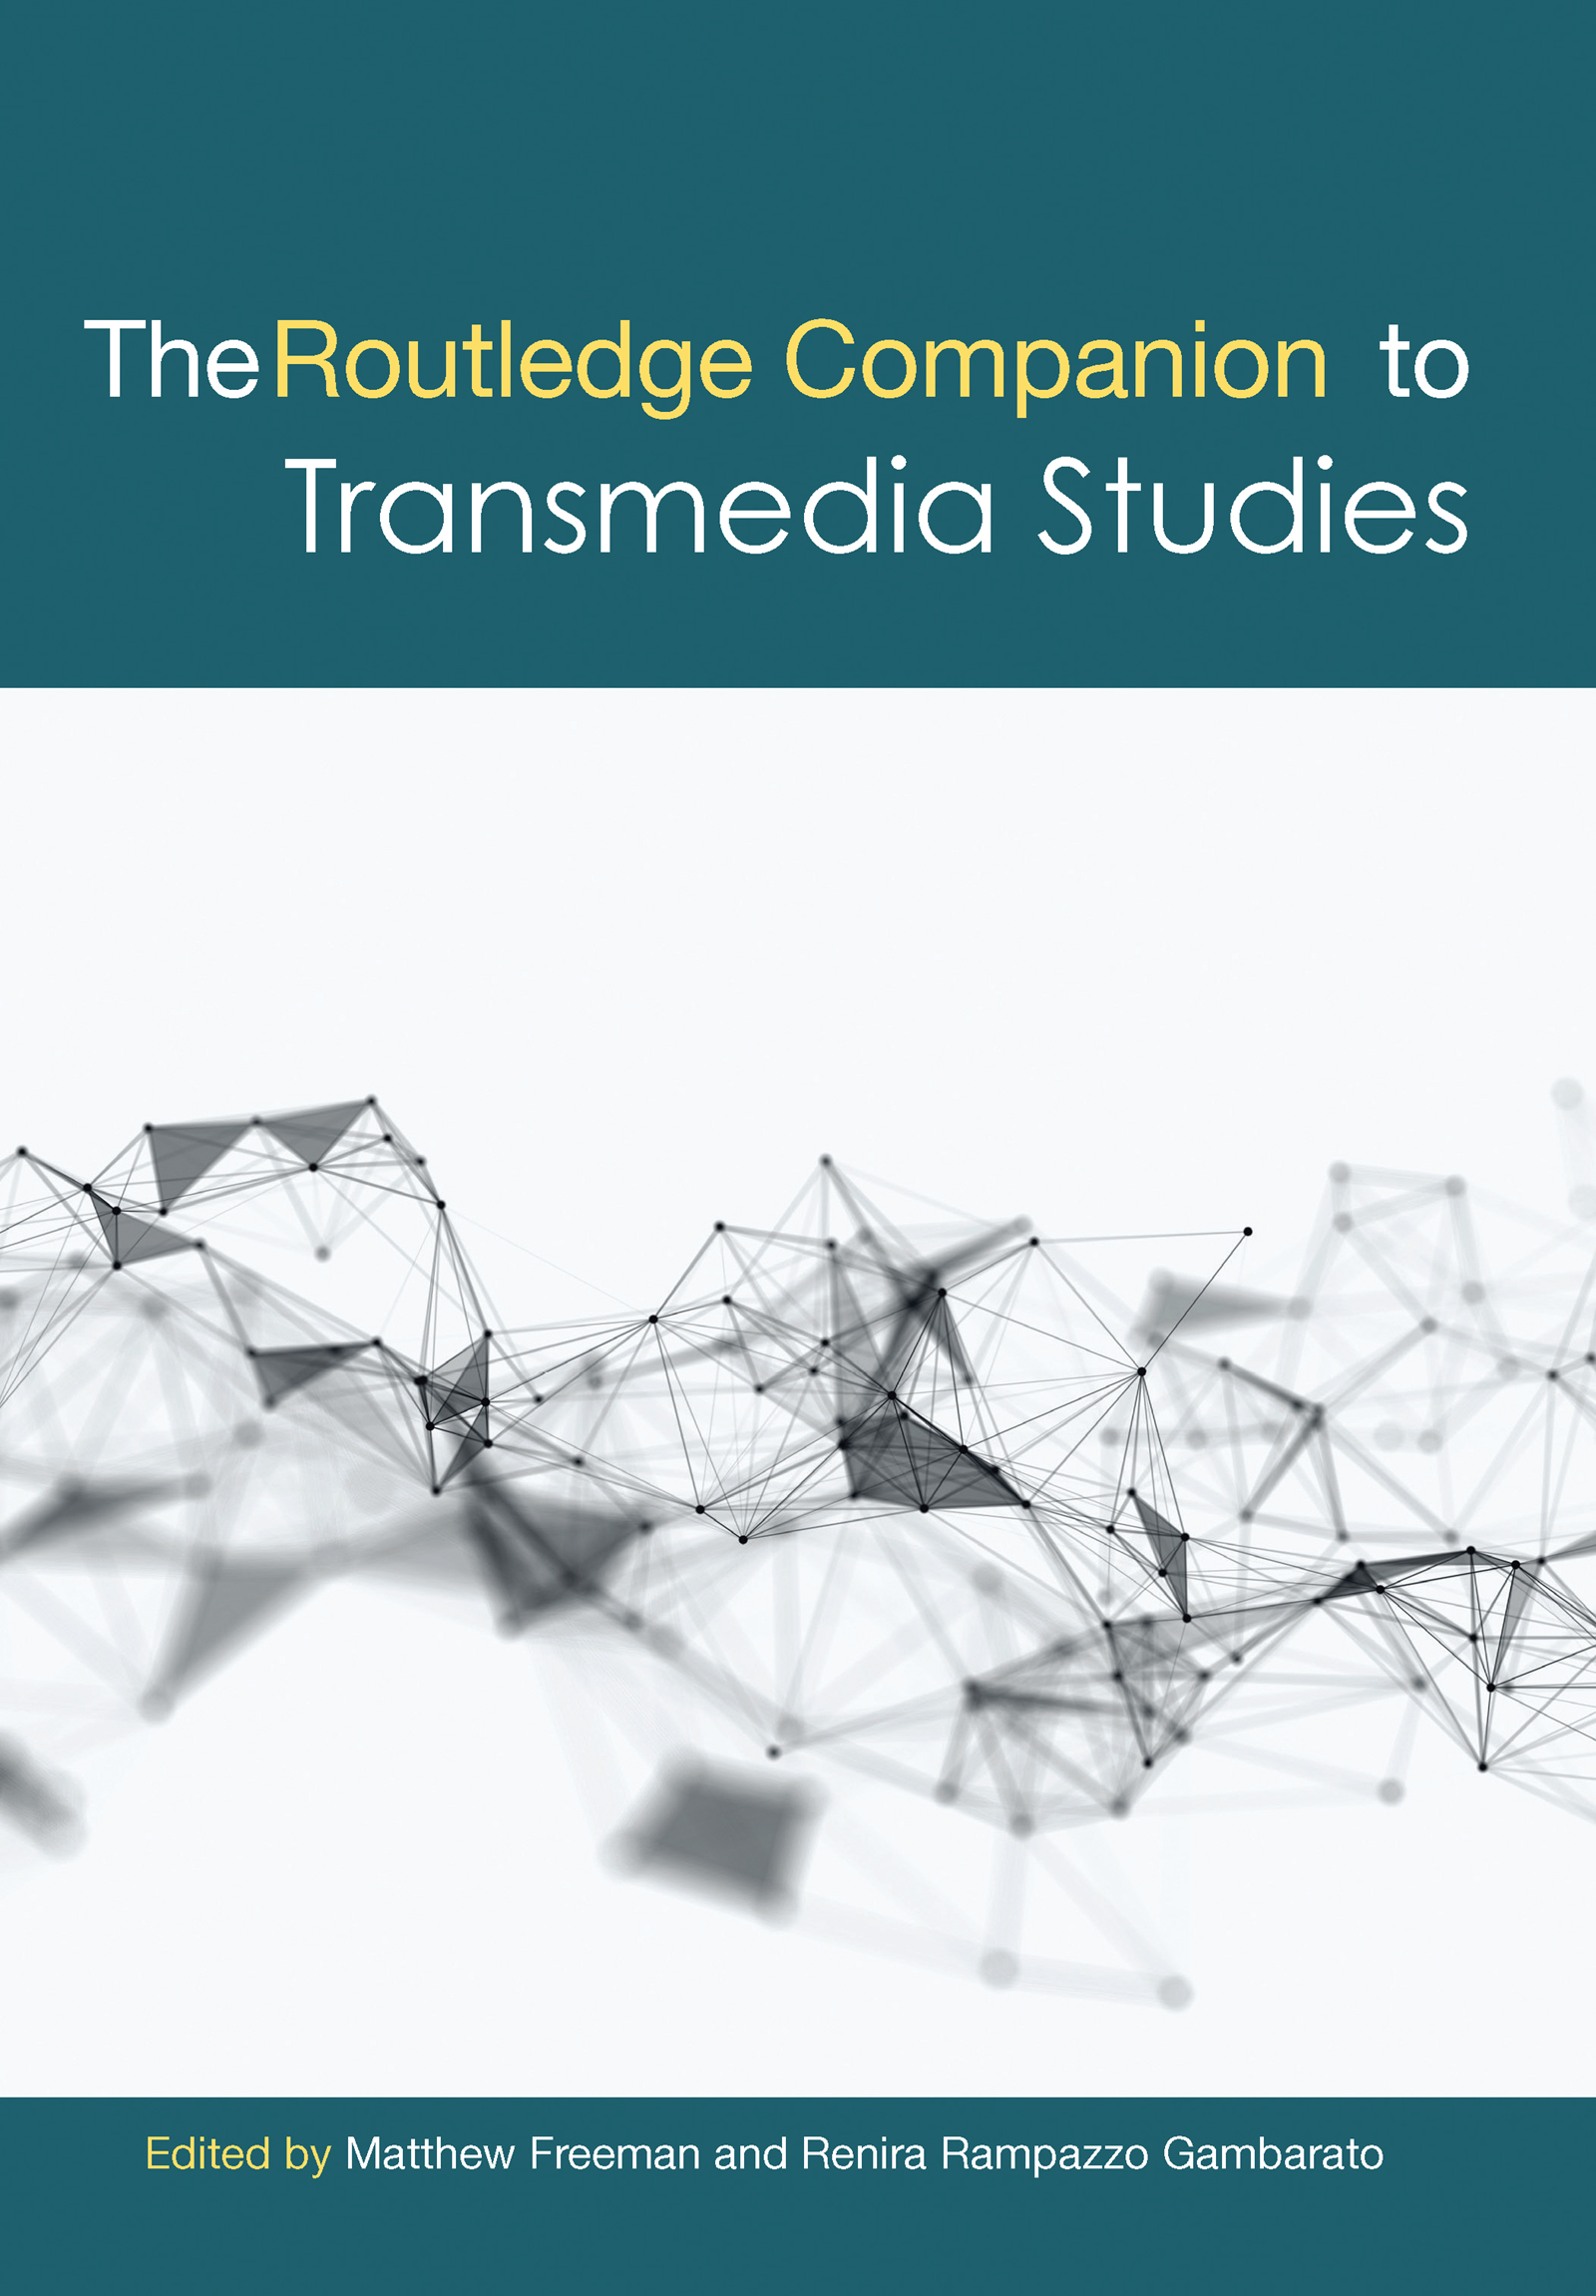 The Routledge Companion to Transmedia Studies